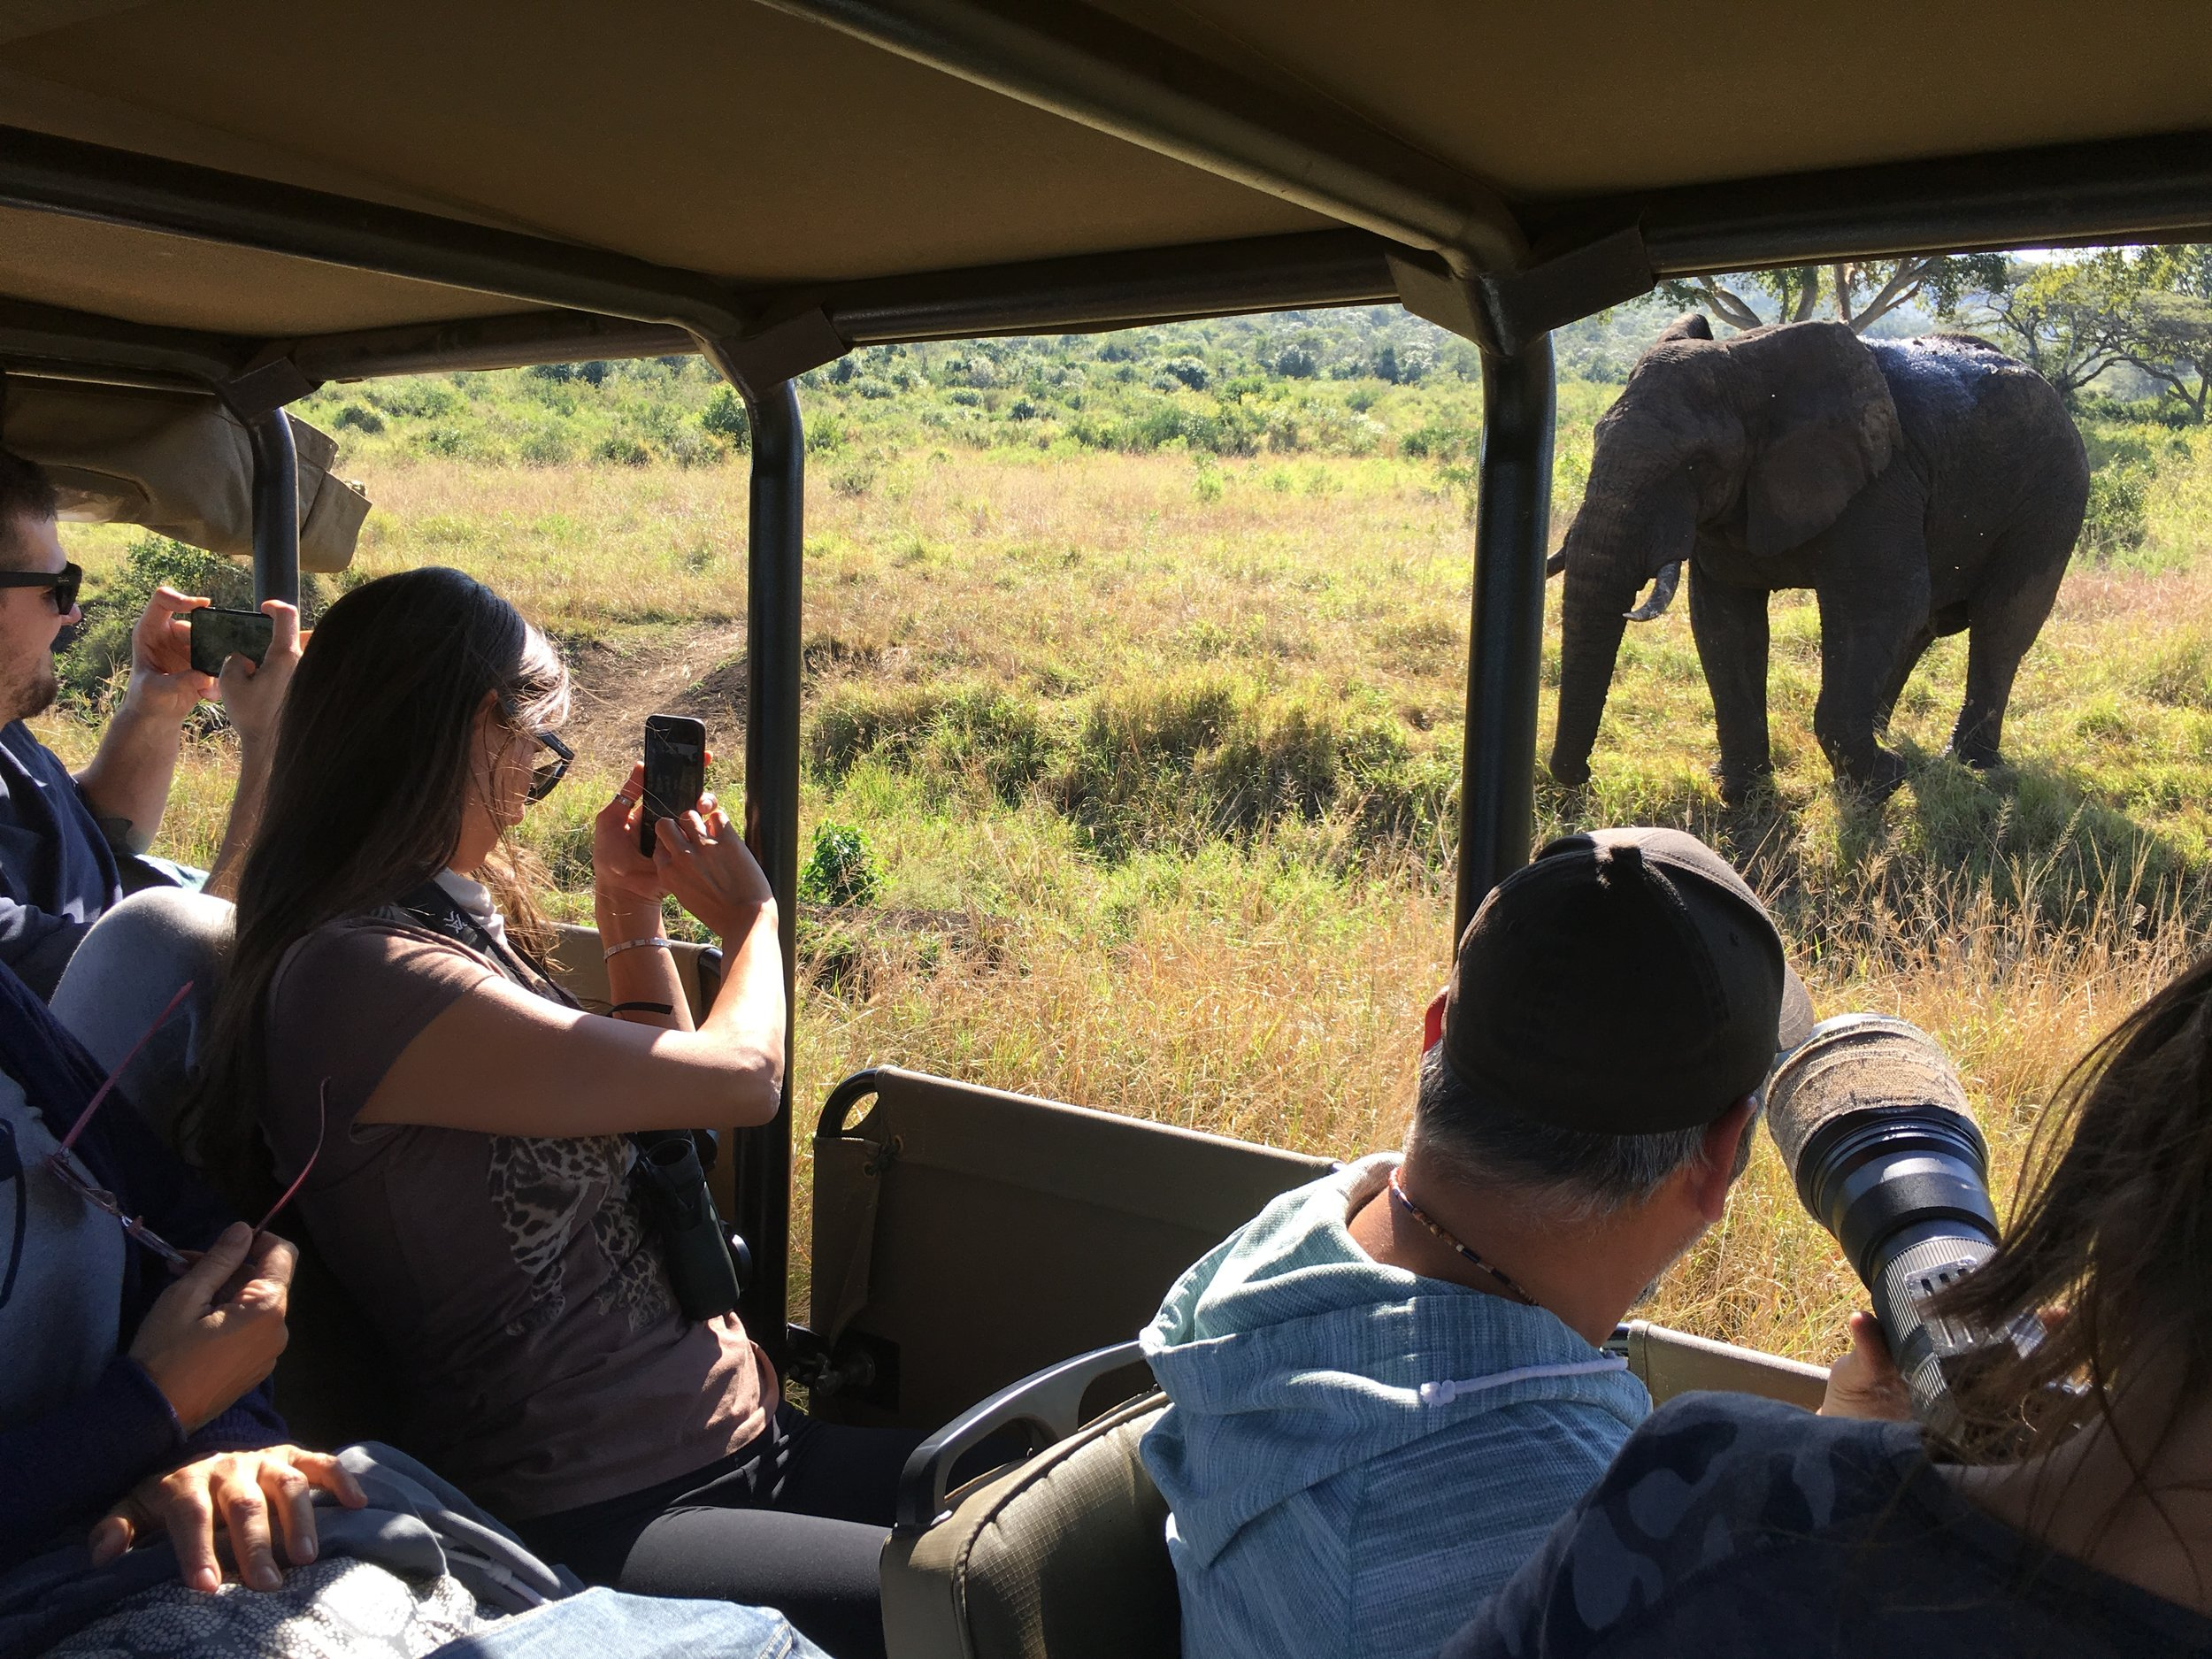 These trips are designed for up close and personal photo opportunites.